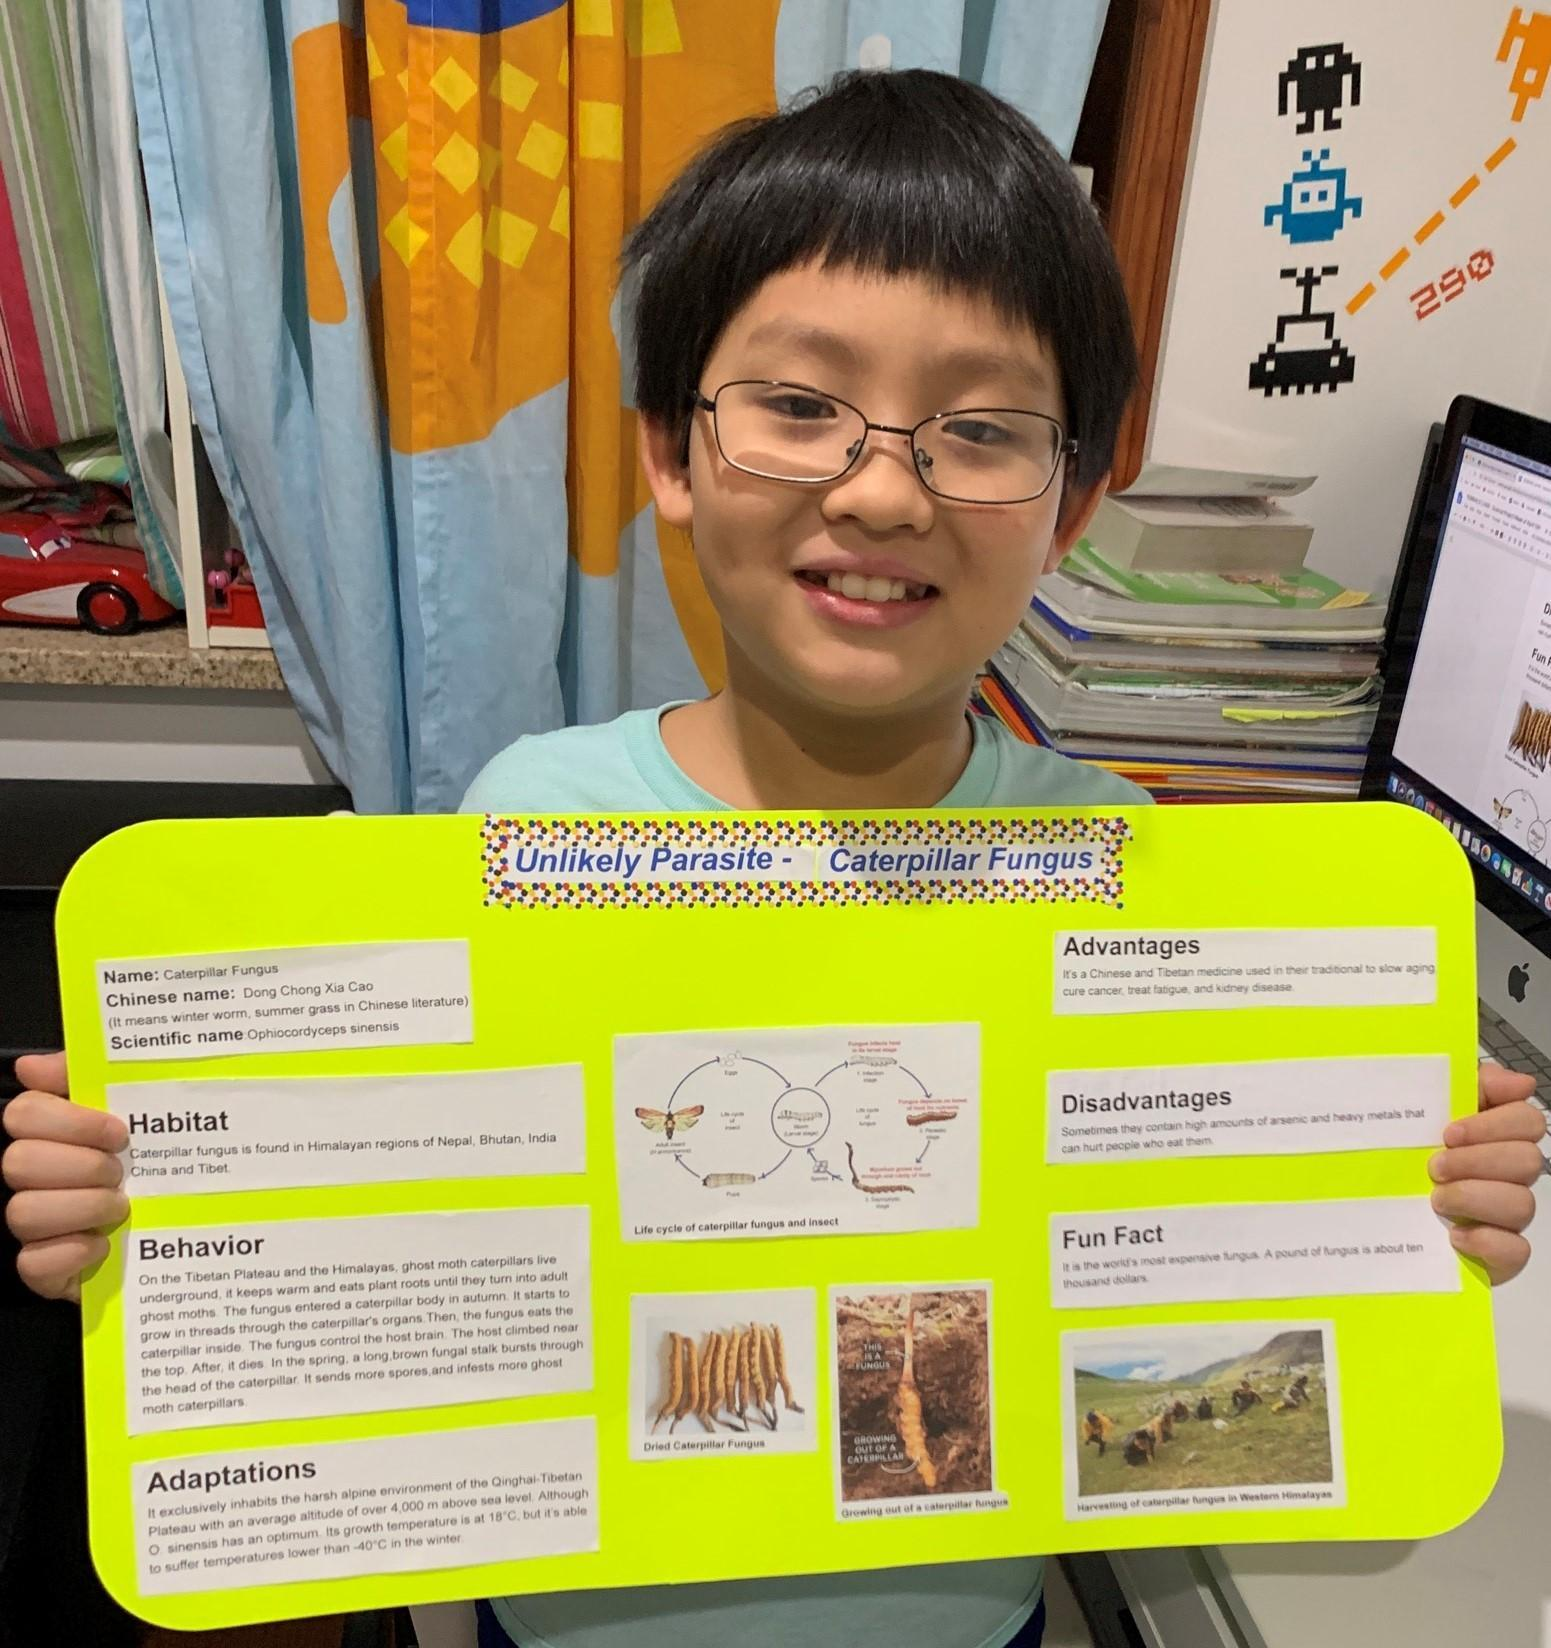 Student in his room during remote learning. He is holding a poster display of his science project on parasites.